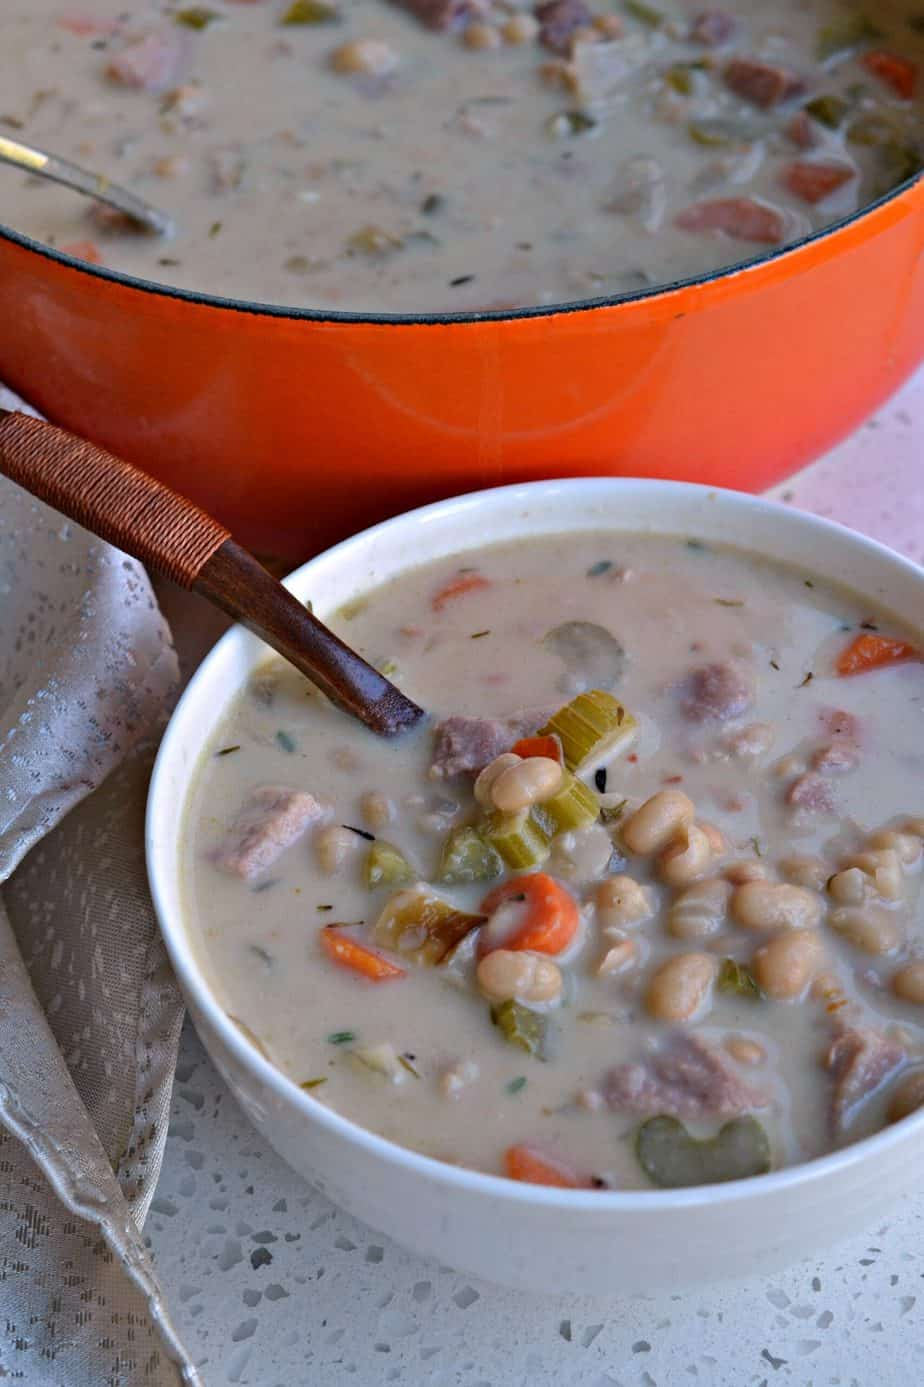 Being quick and easy makes this Ham and Bean Soup one of my favorite fall and winter weeknight meals.